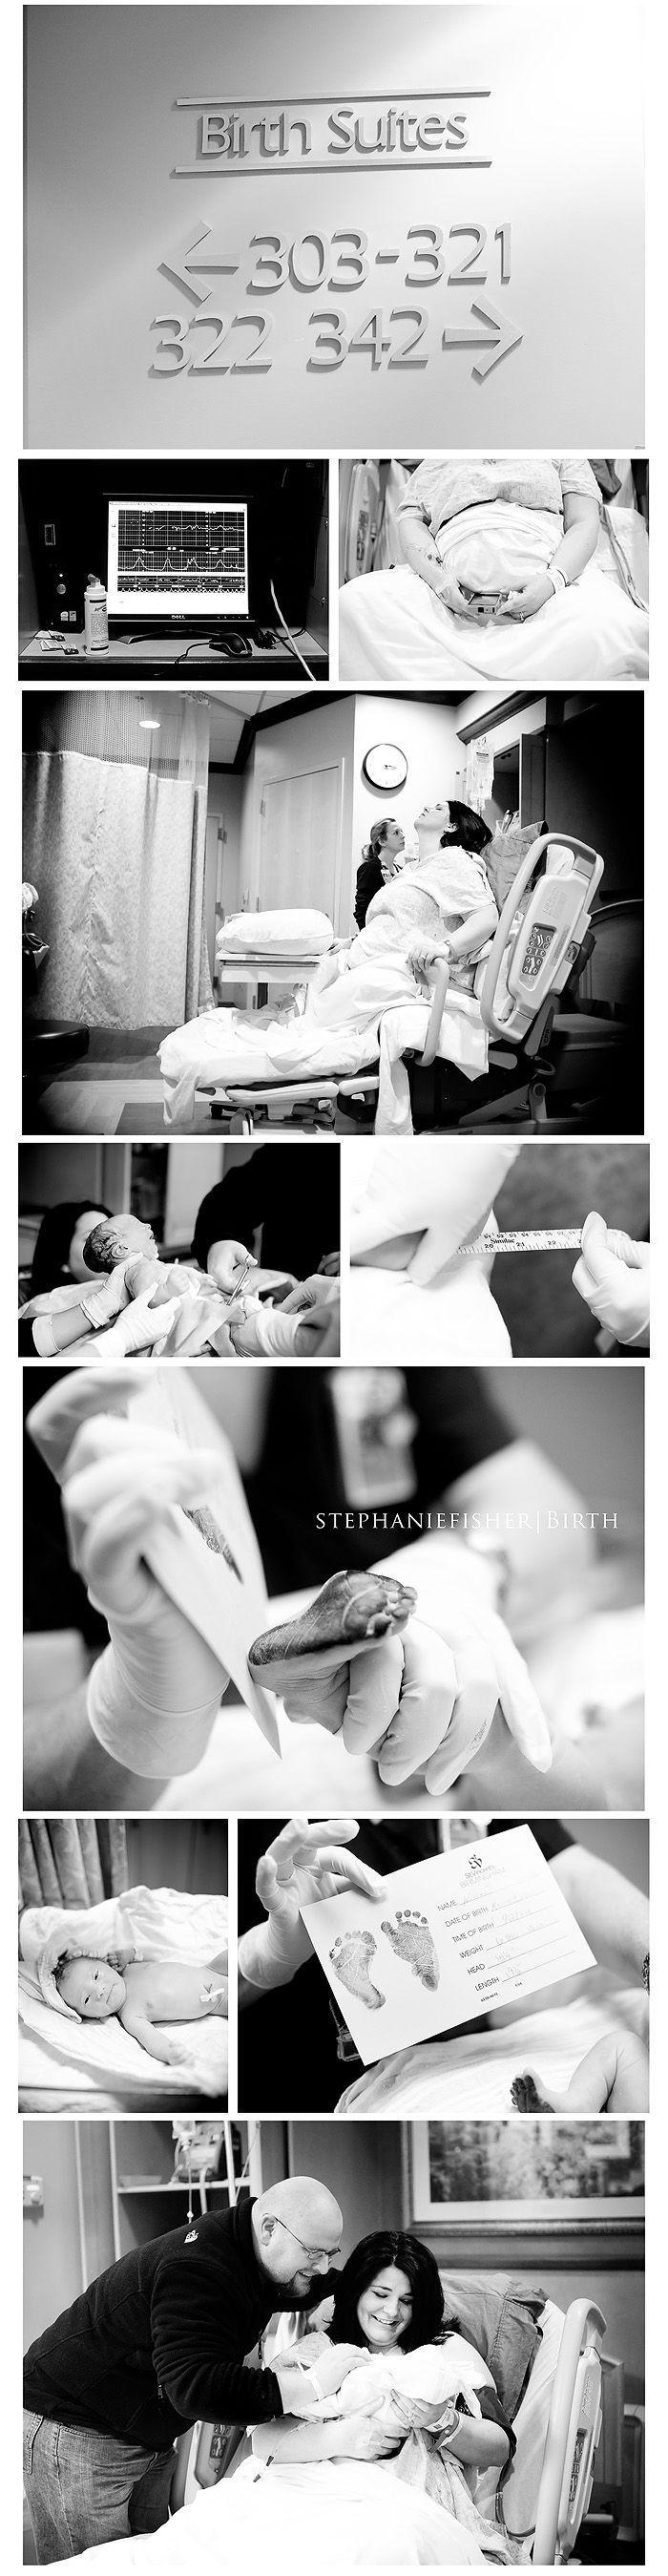 The details-love it. Things you miss when you're the one in labor...